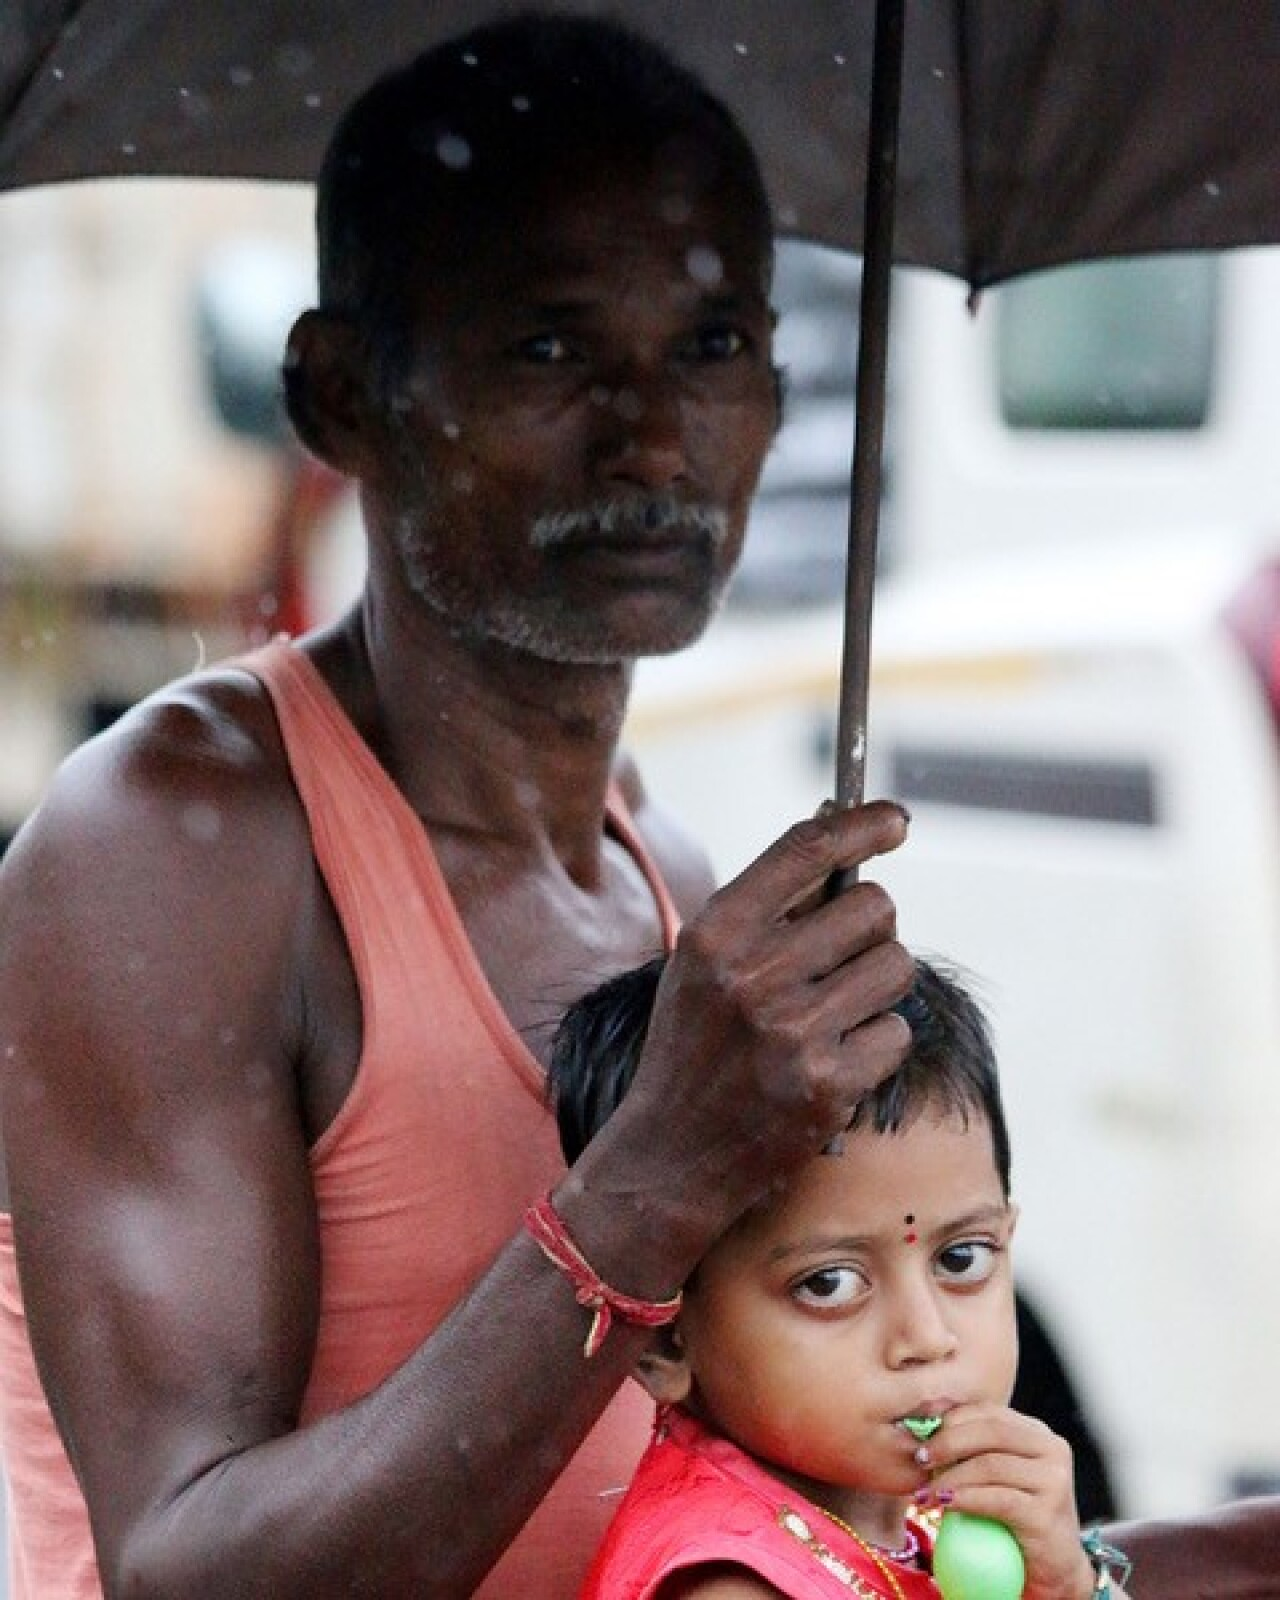 and older man is holding an umbrella to cover himself and a young boy from the rain.